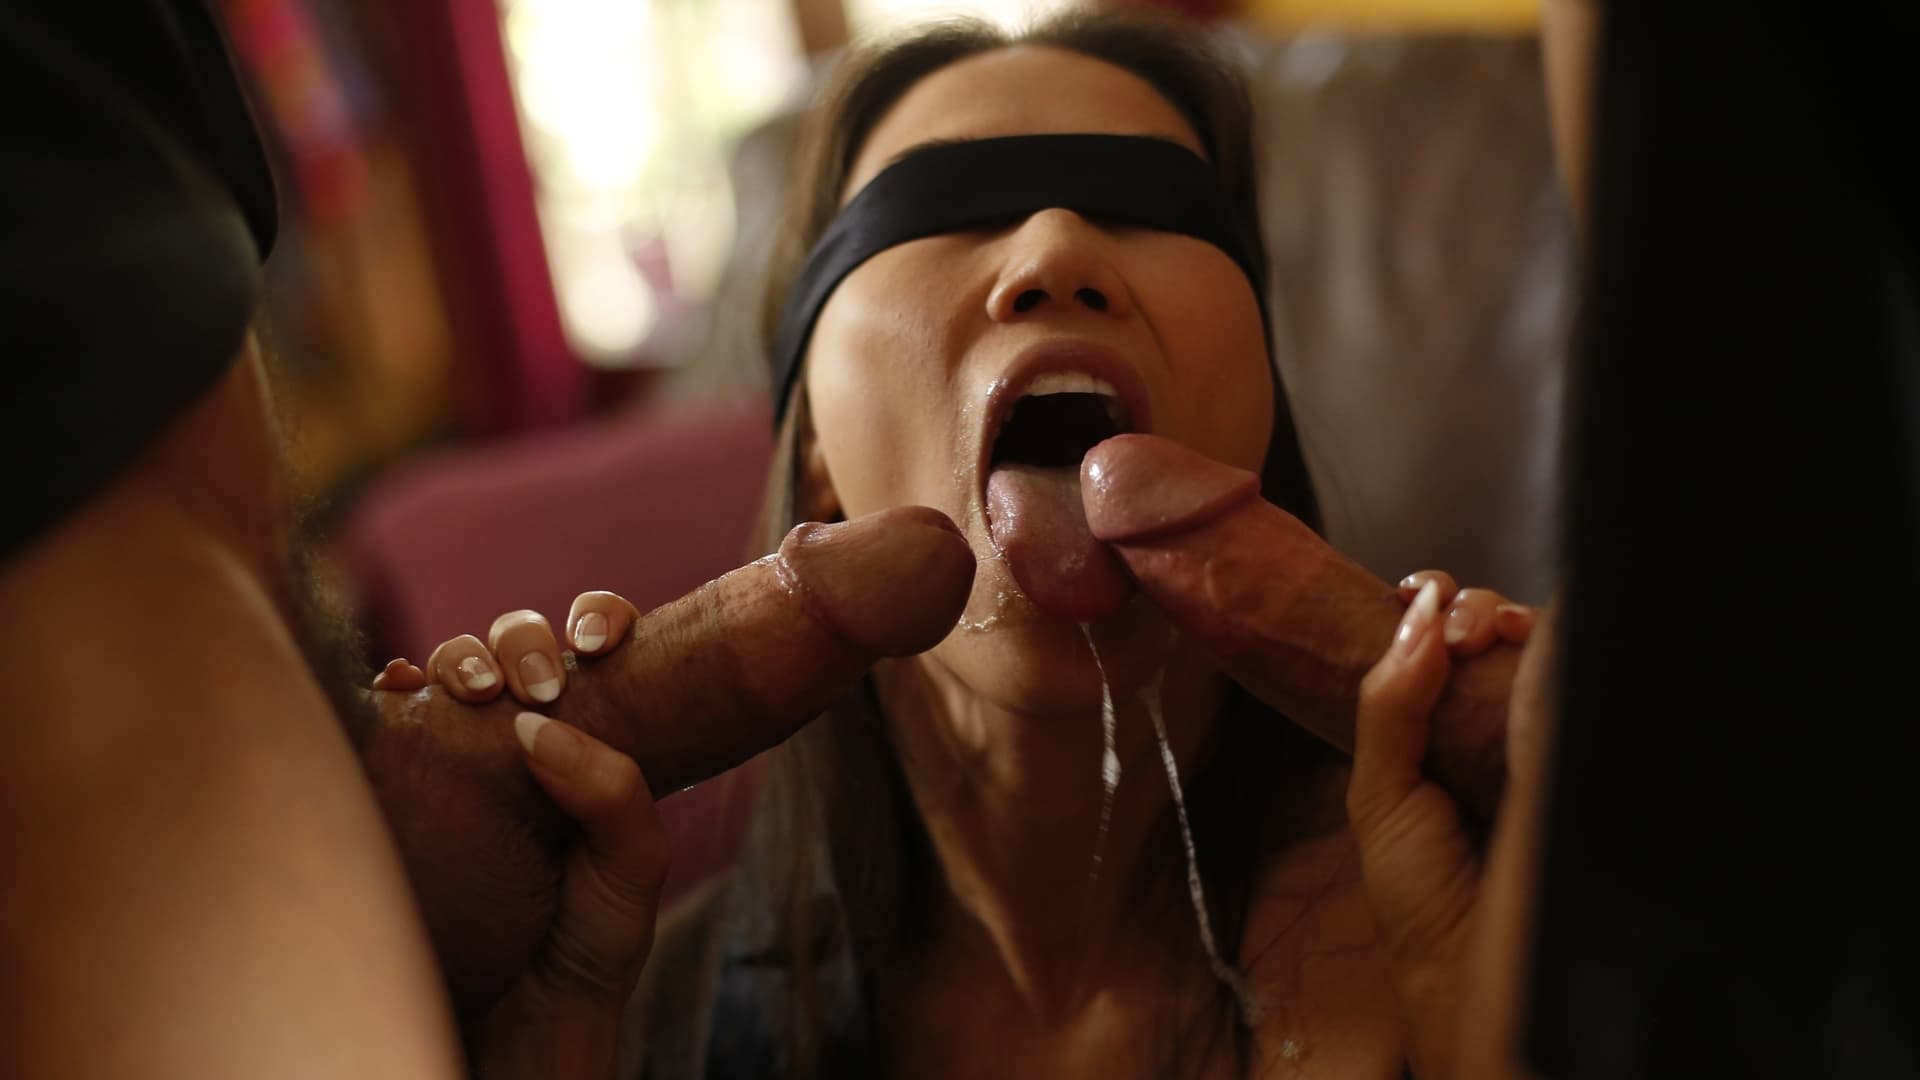 naked-hispanics-blindfold-sex-with-stranger-clip-photo